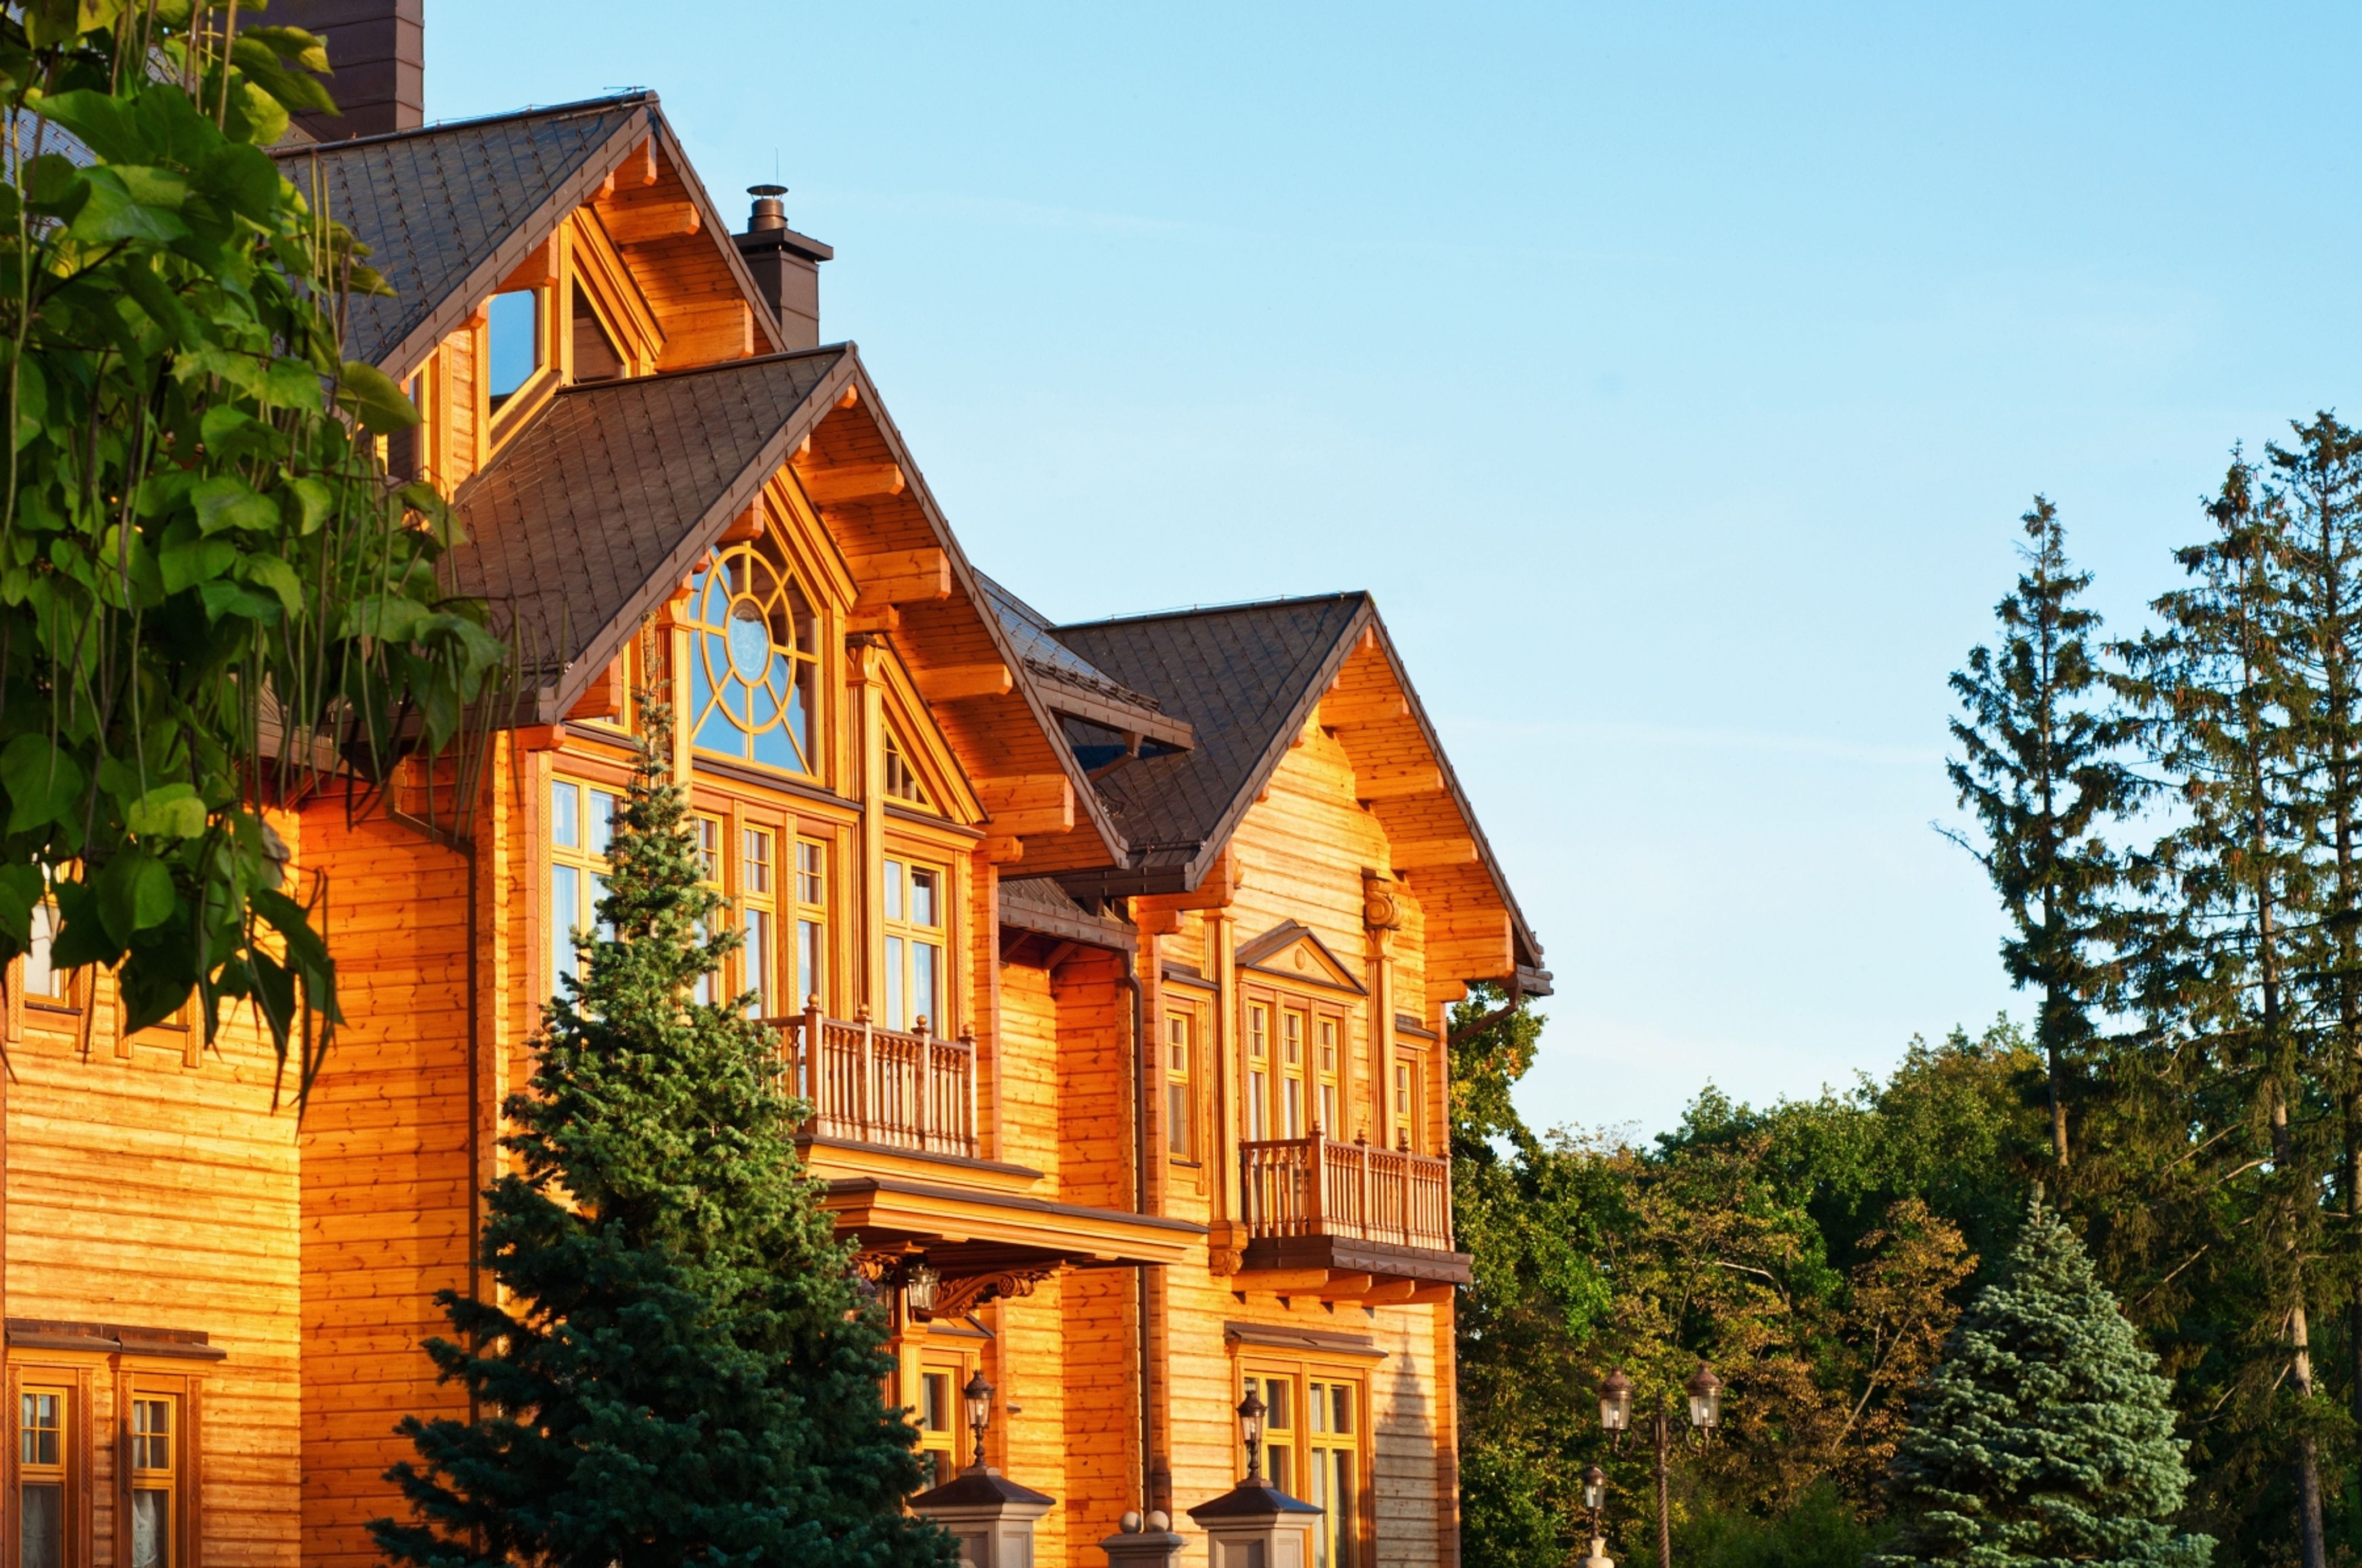 Beautiful wooden residential home in the mountains